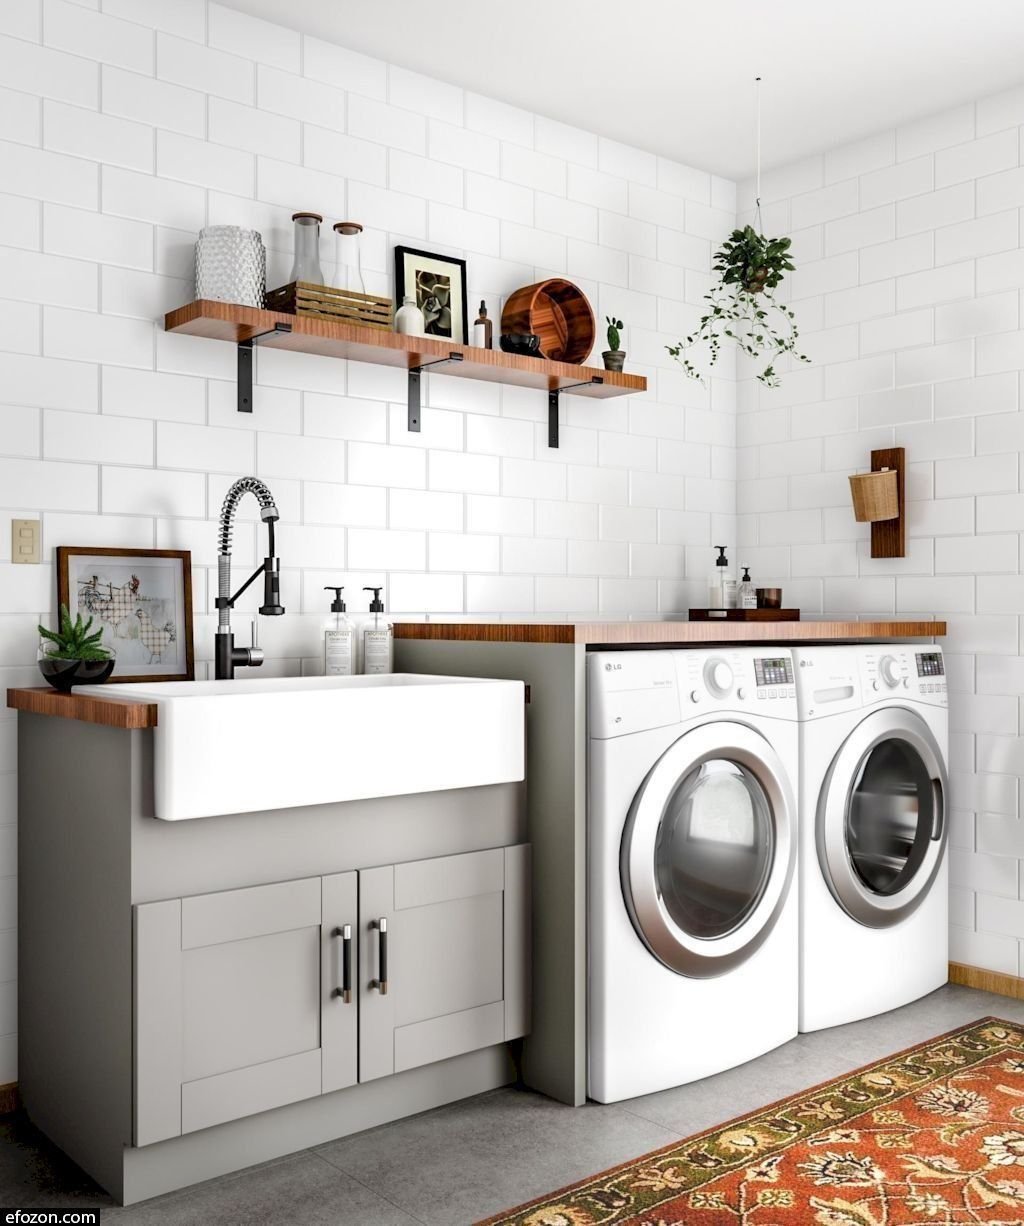 44 Fabulous Laundry Room Design Options For Your Inspiration Image 31 Of 47 Modern Laundry Rooms Laundry Room Design Dream Laundry Room